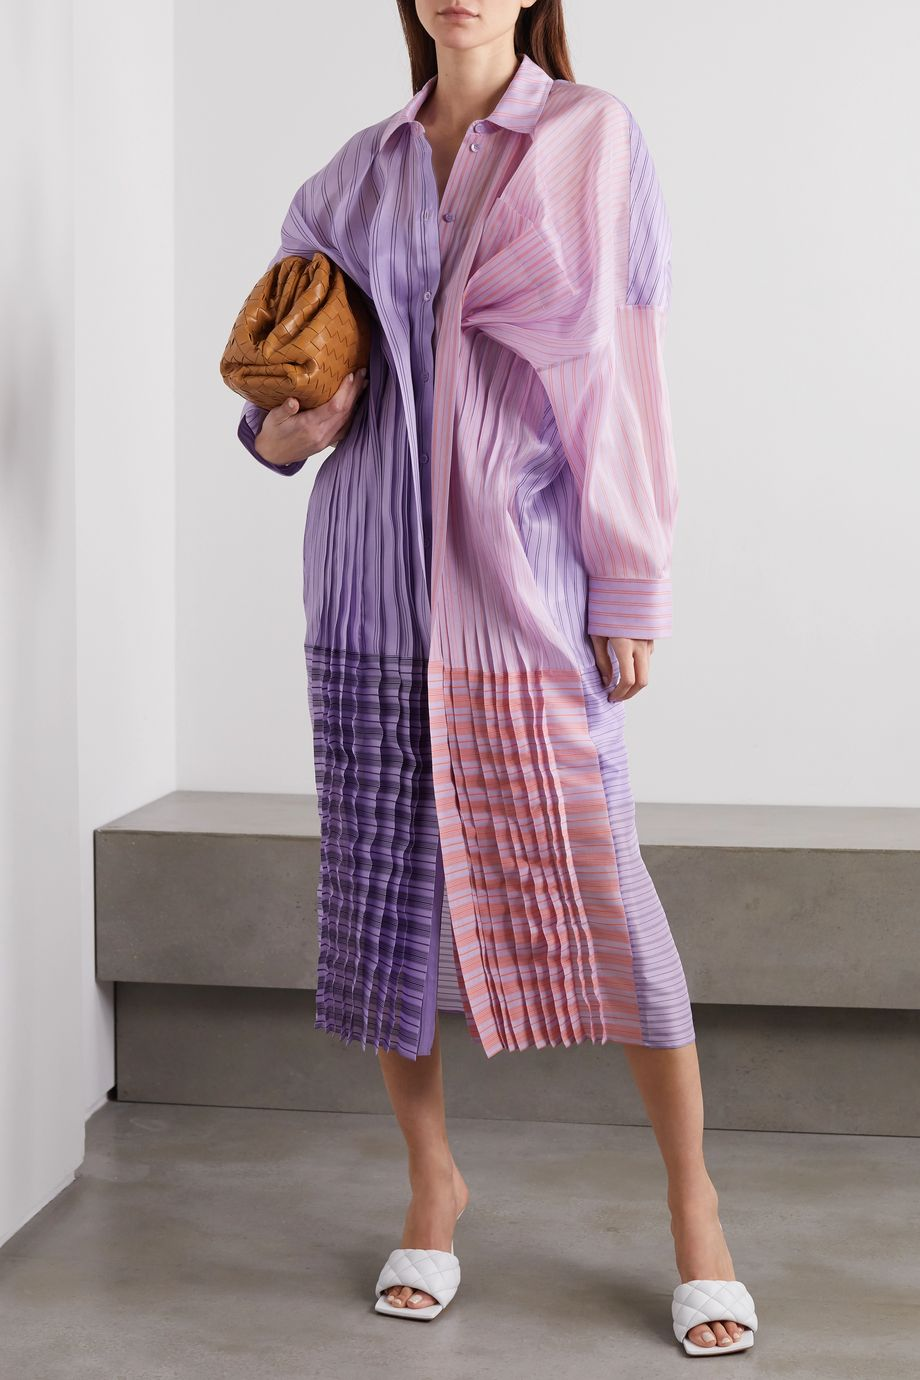 Nina Ricci Oversized gathered striped silk and cotton-blend organza shirt dress